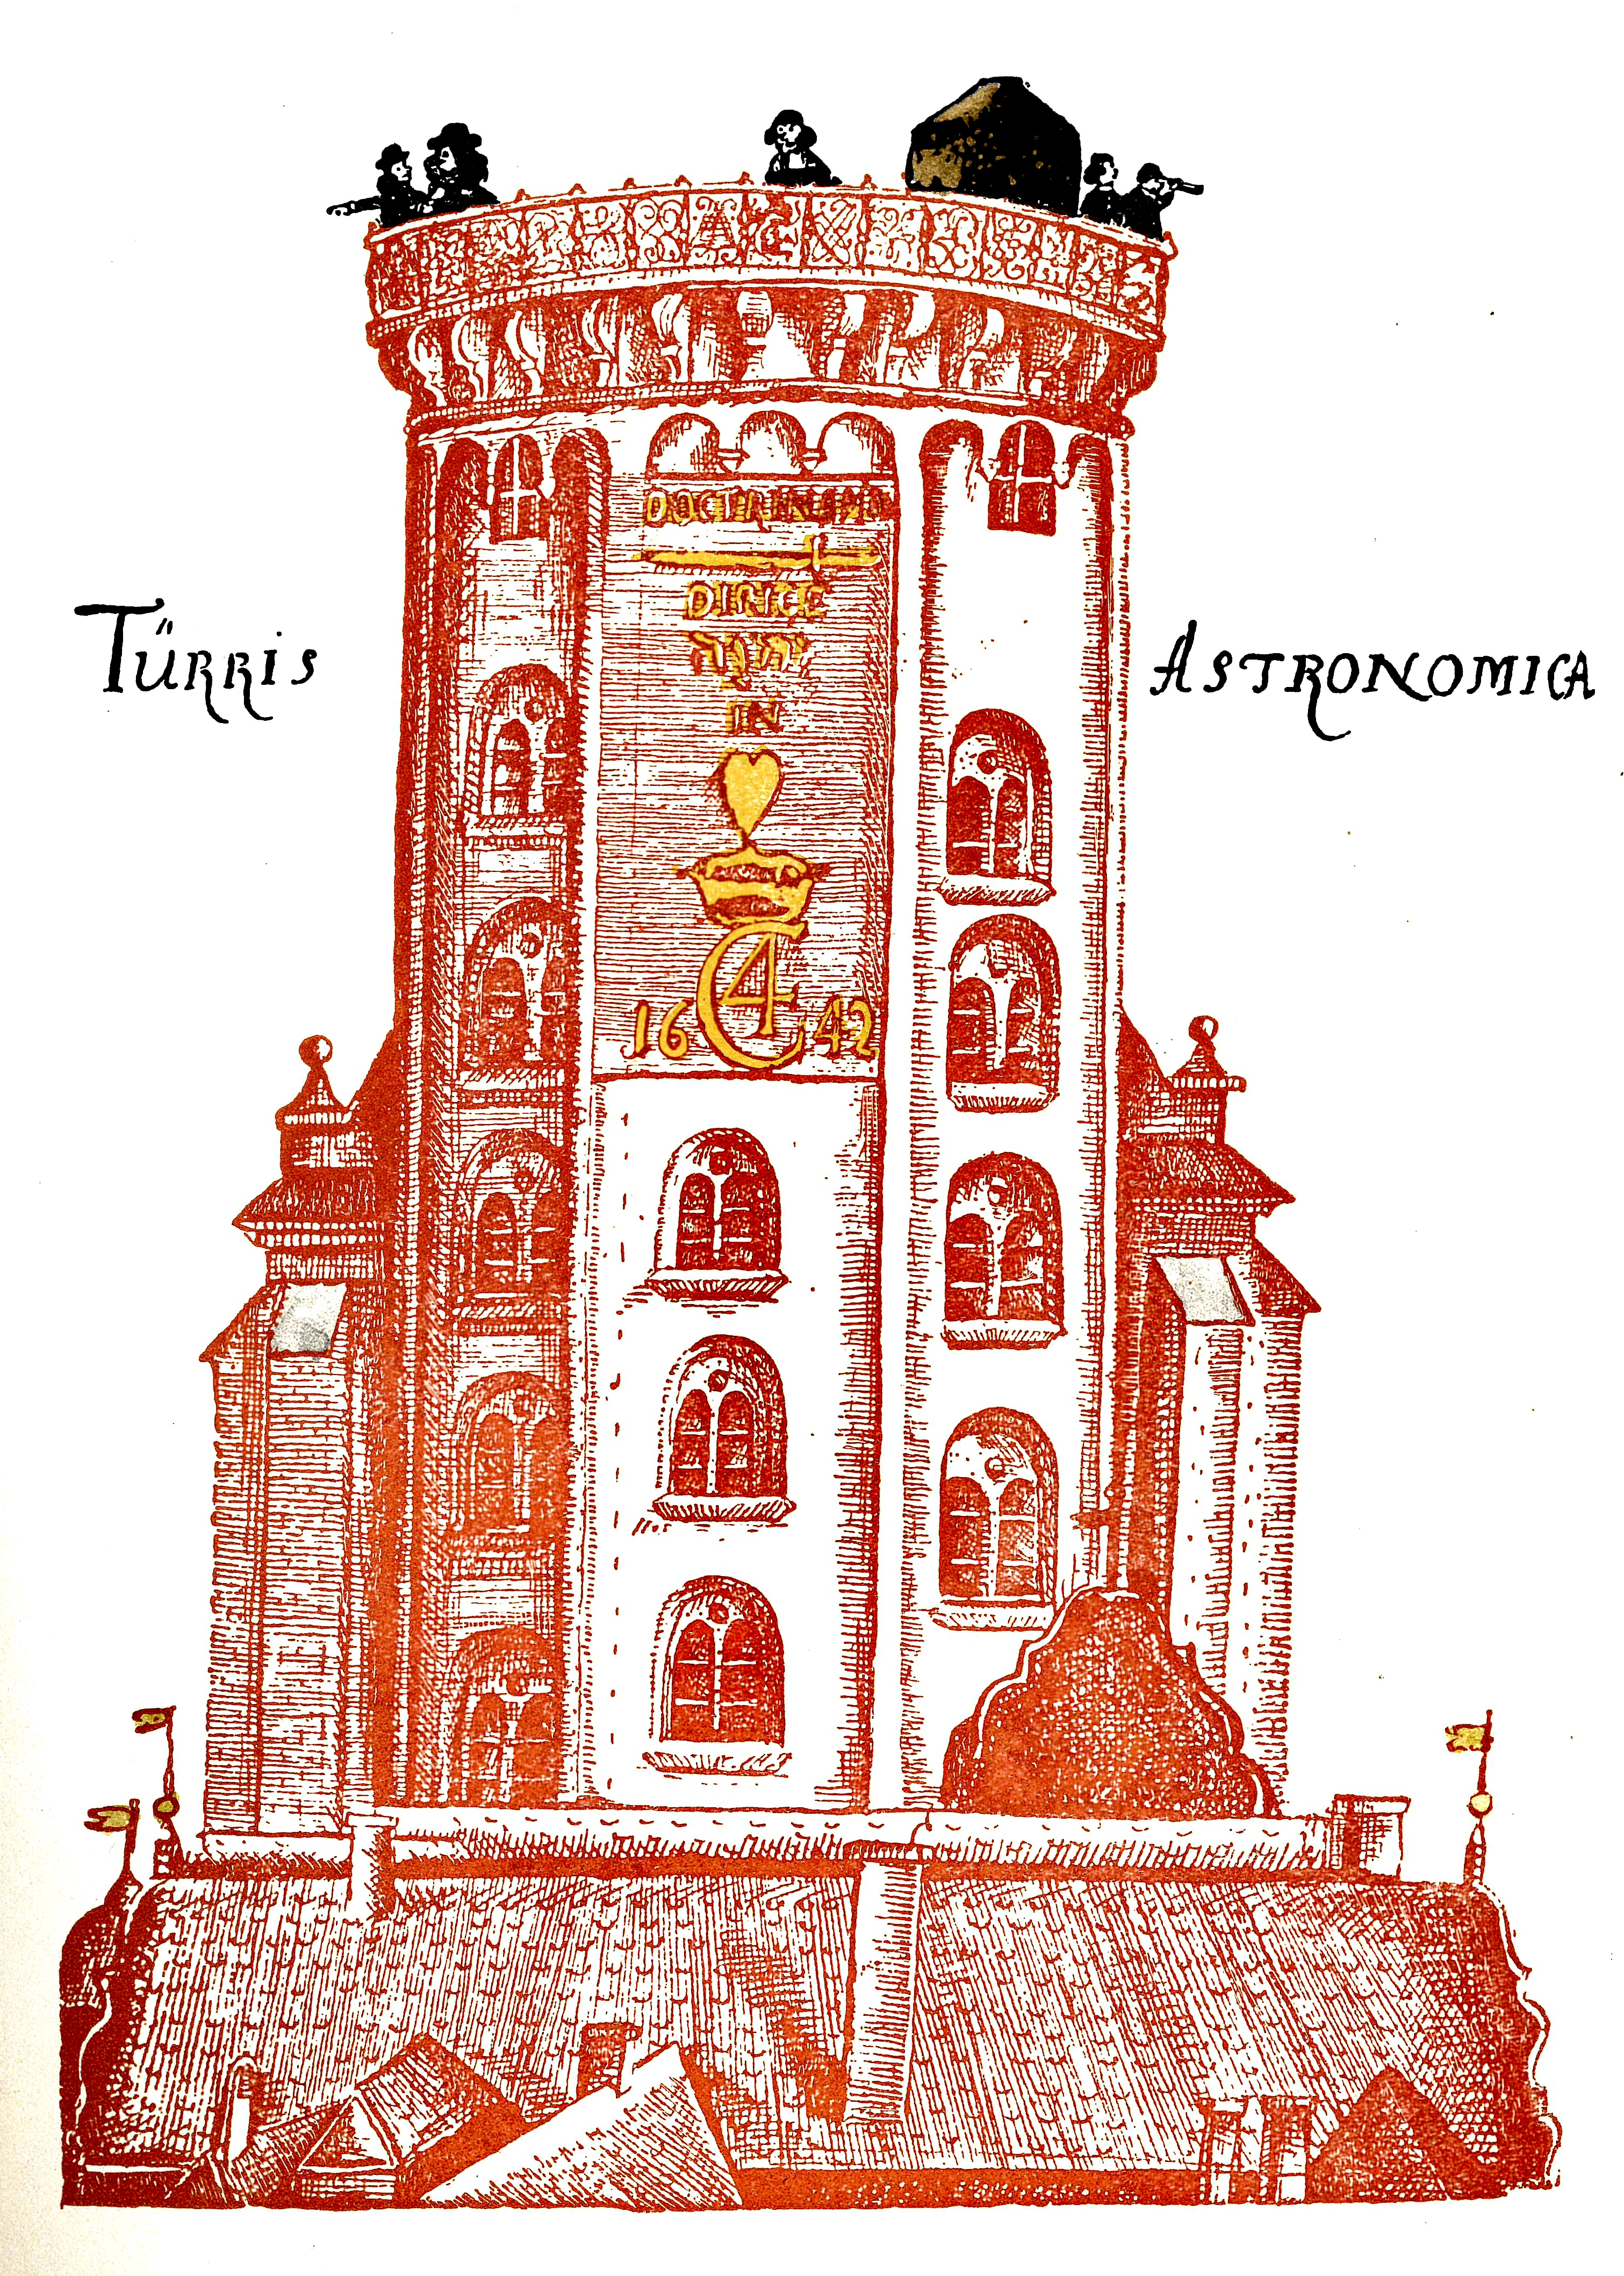 An early depiction of the Round Tower from Holger Jacobæus' travel book